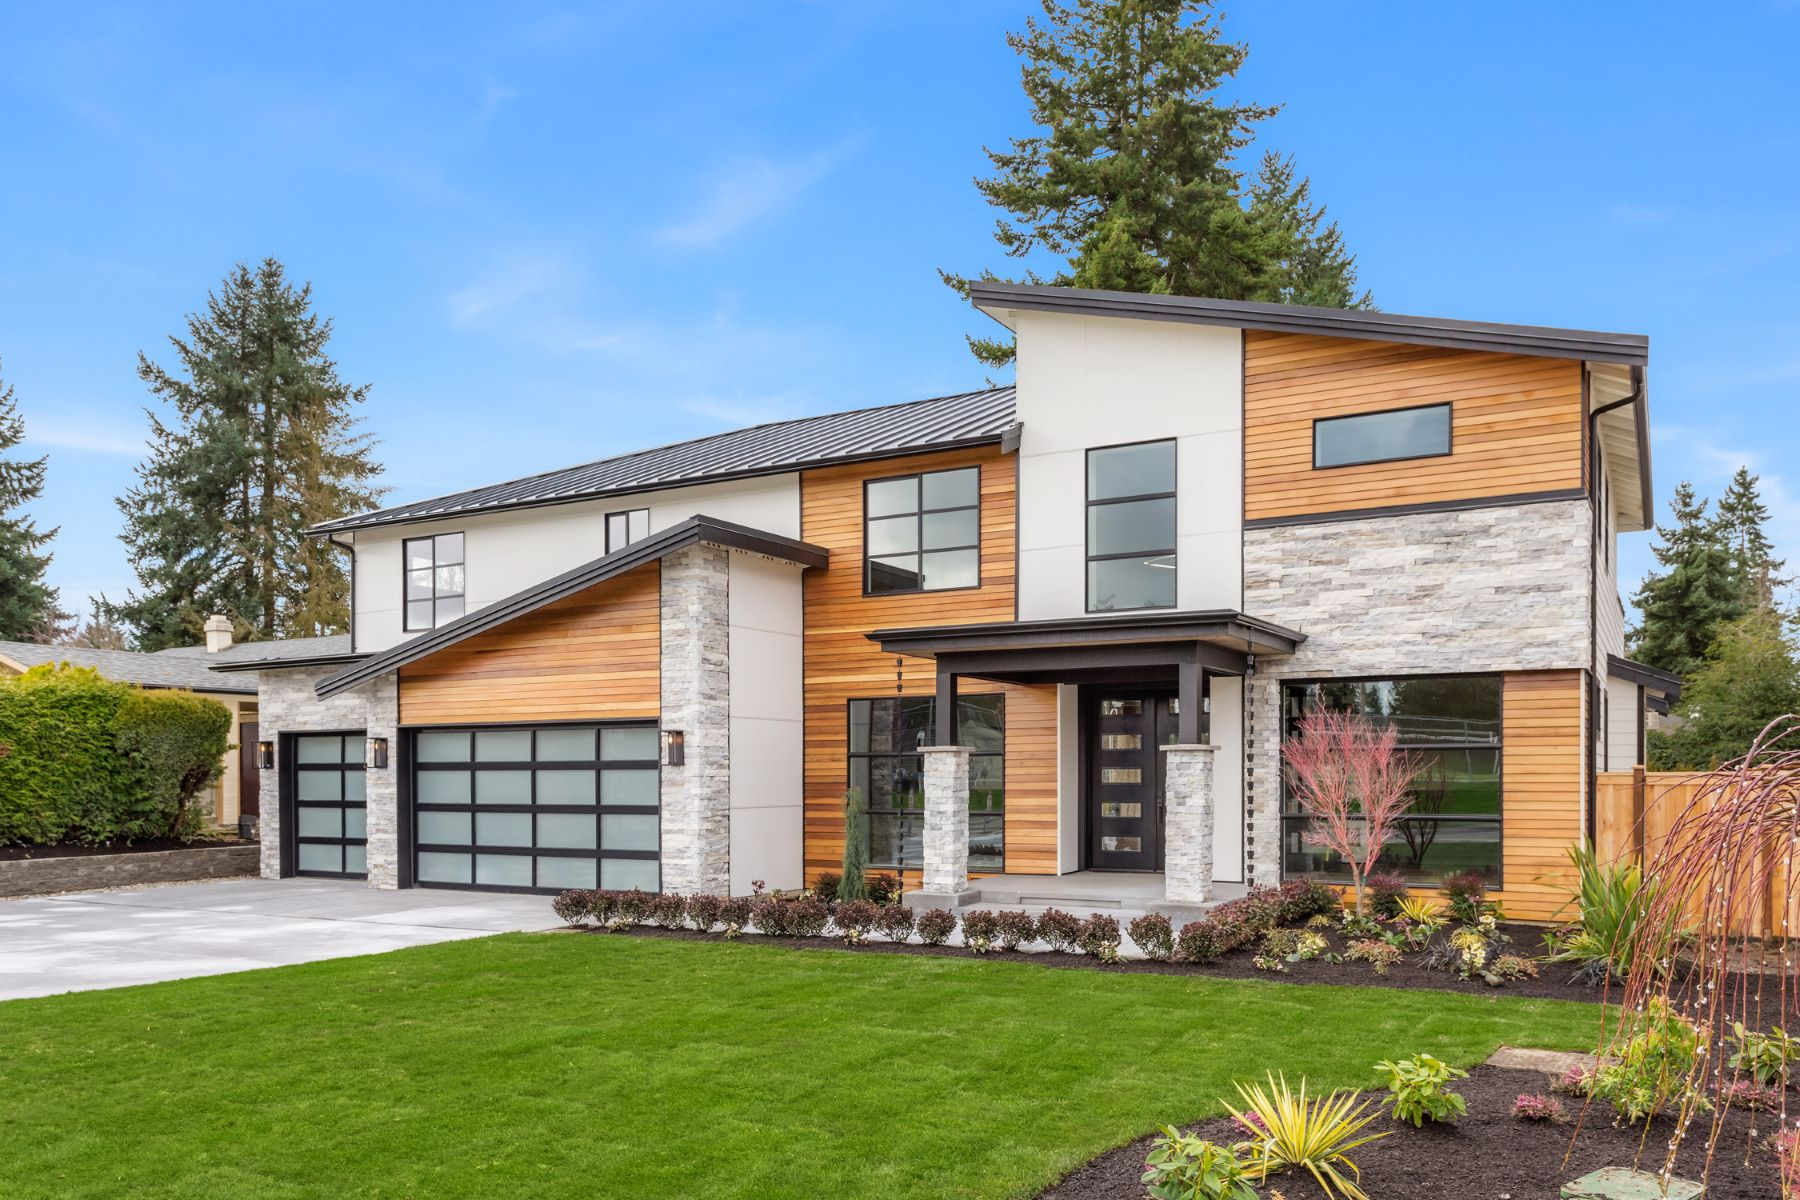 Single Family Homes for Sale at Exquisite NW Contemporary 807 143rd Ave SE, Bellevue, Washington 98007 United States